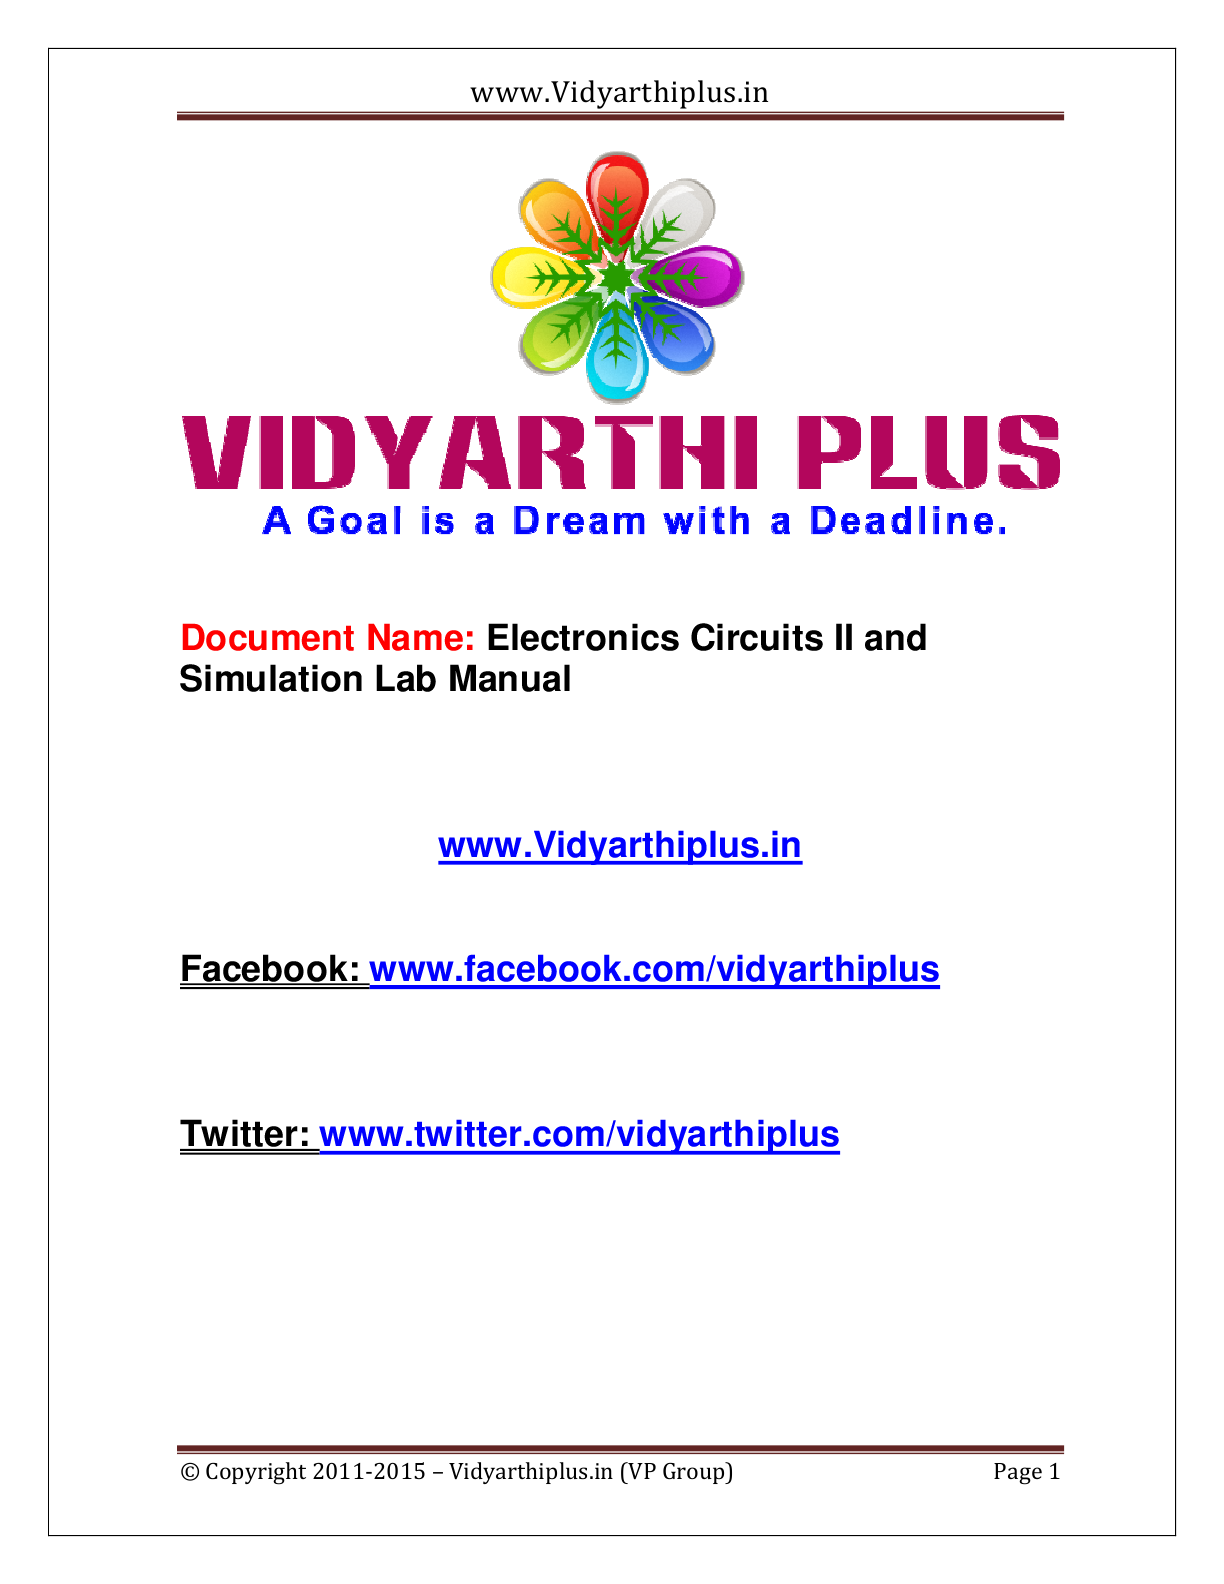 Electronic Circuits Ii And Simulation Lab Manual Vidyarthiplus V Circuit Simulator Download Link Click Here To